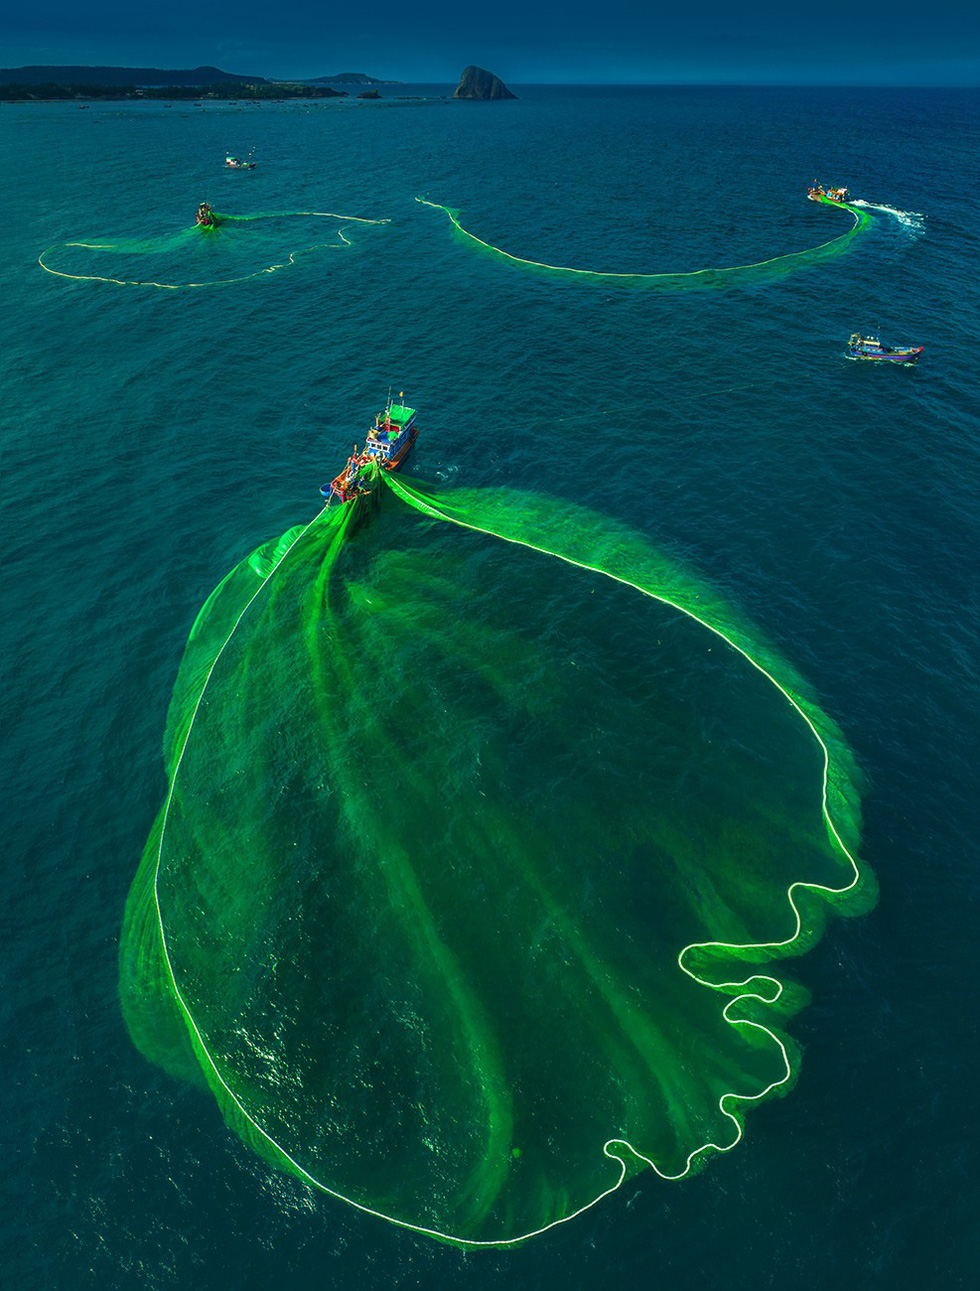 Green nets are sprung across a turquoise sea. Photo: TRAN BAO HOA